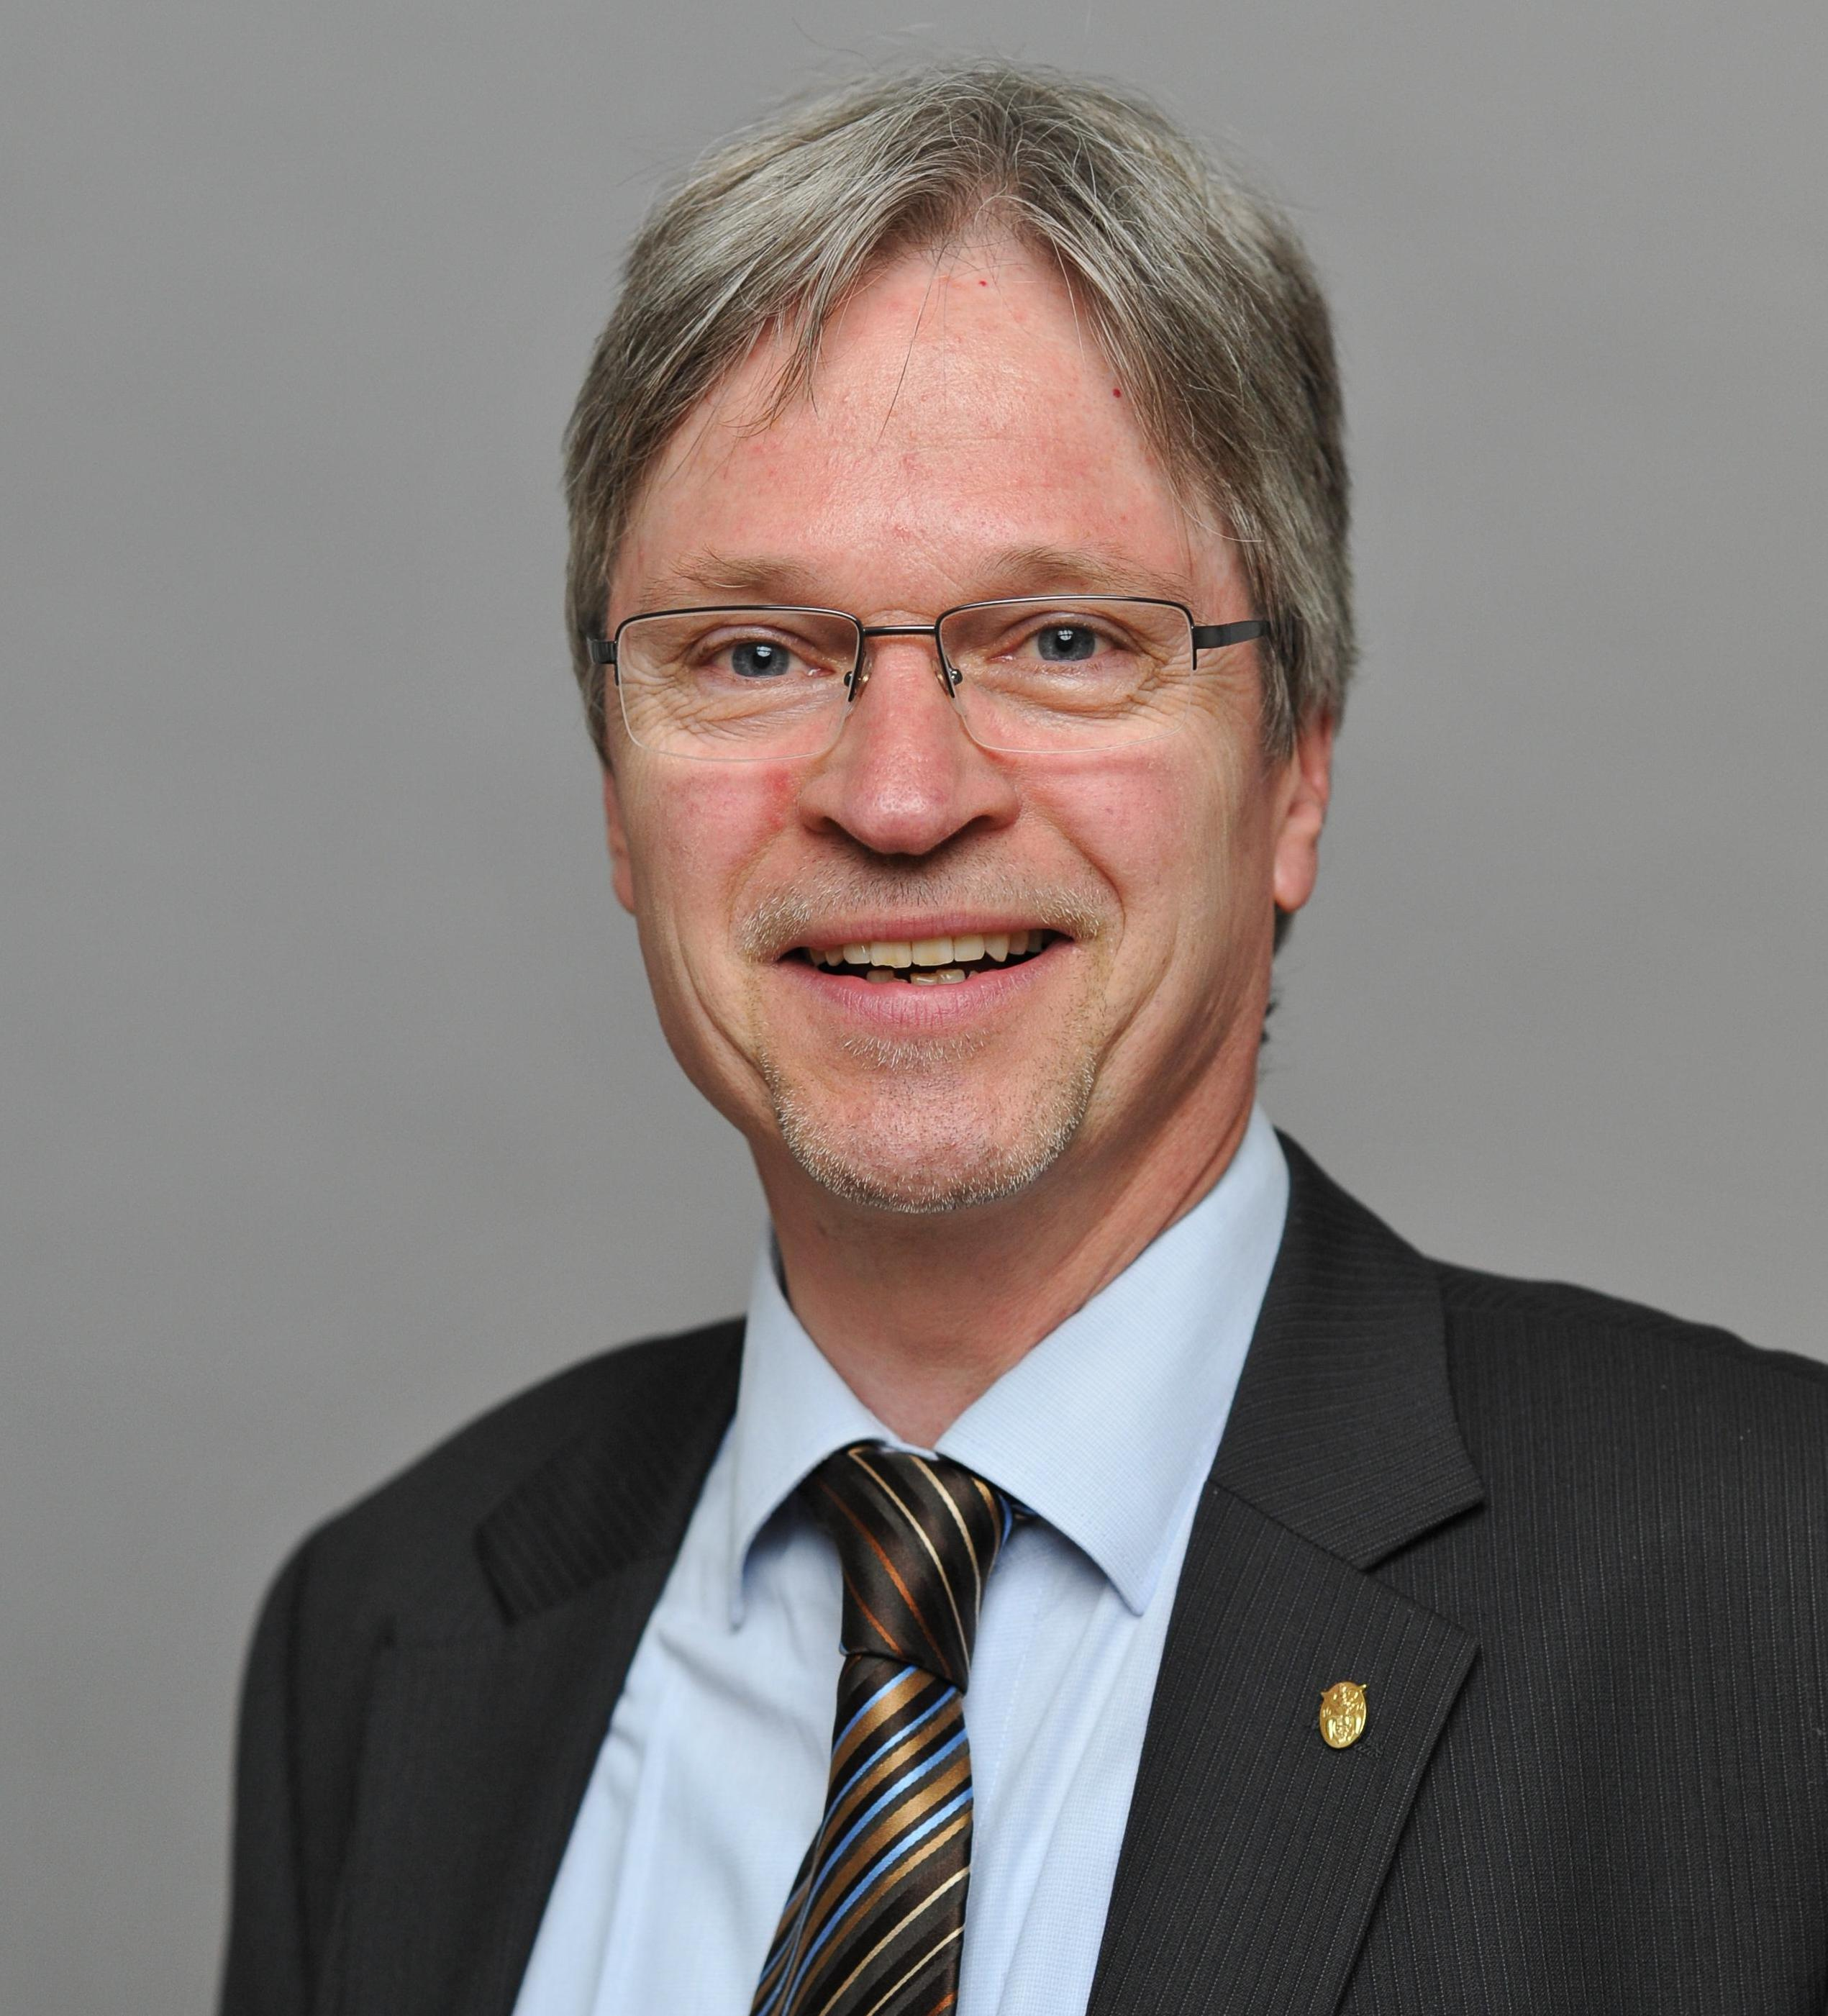 Prof. Dr. Christian Jung